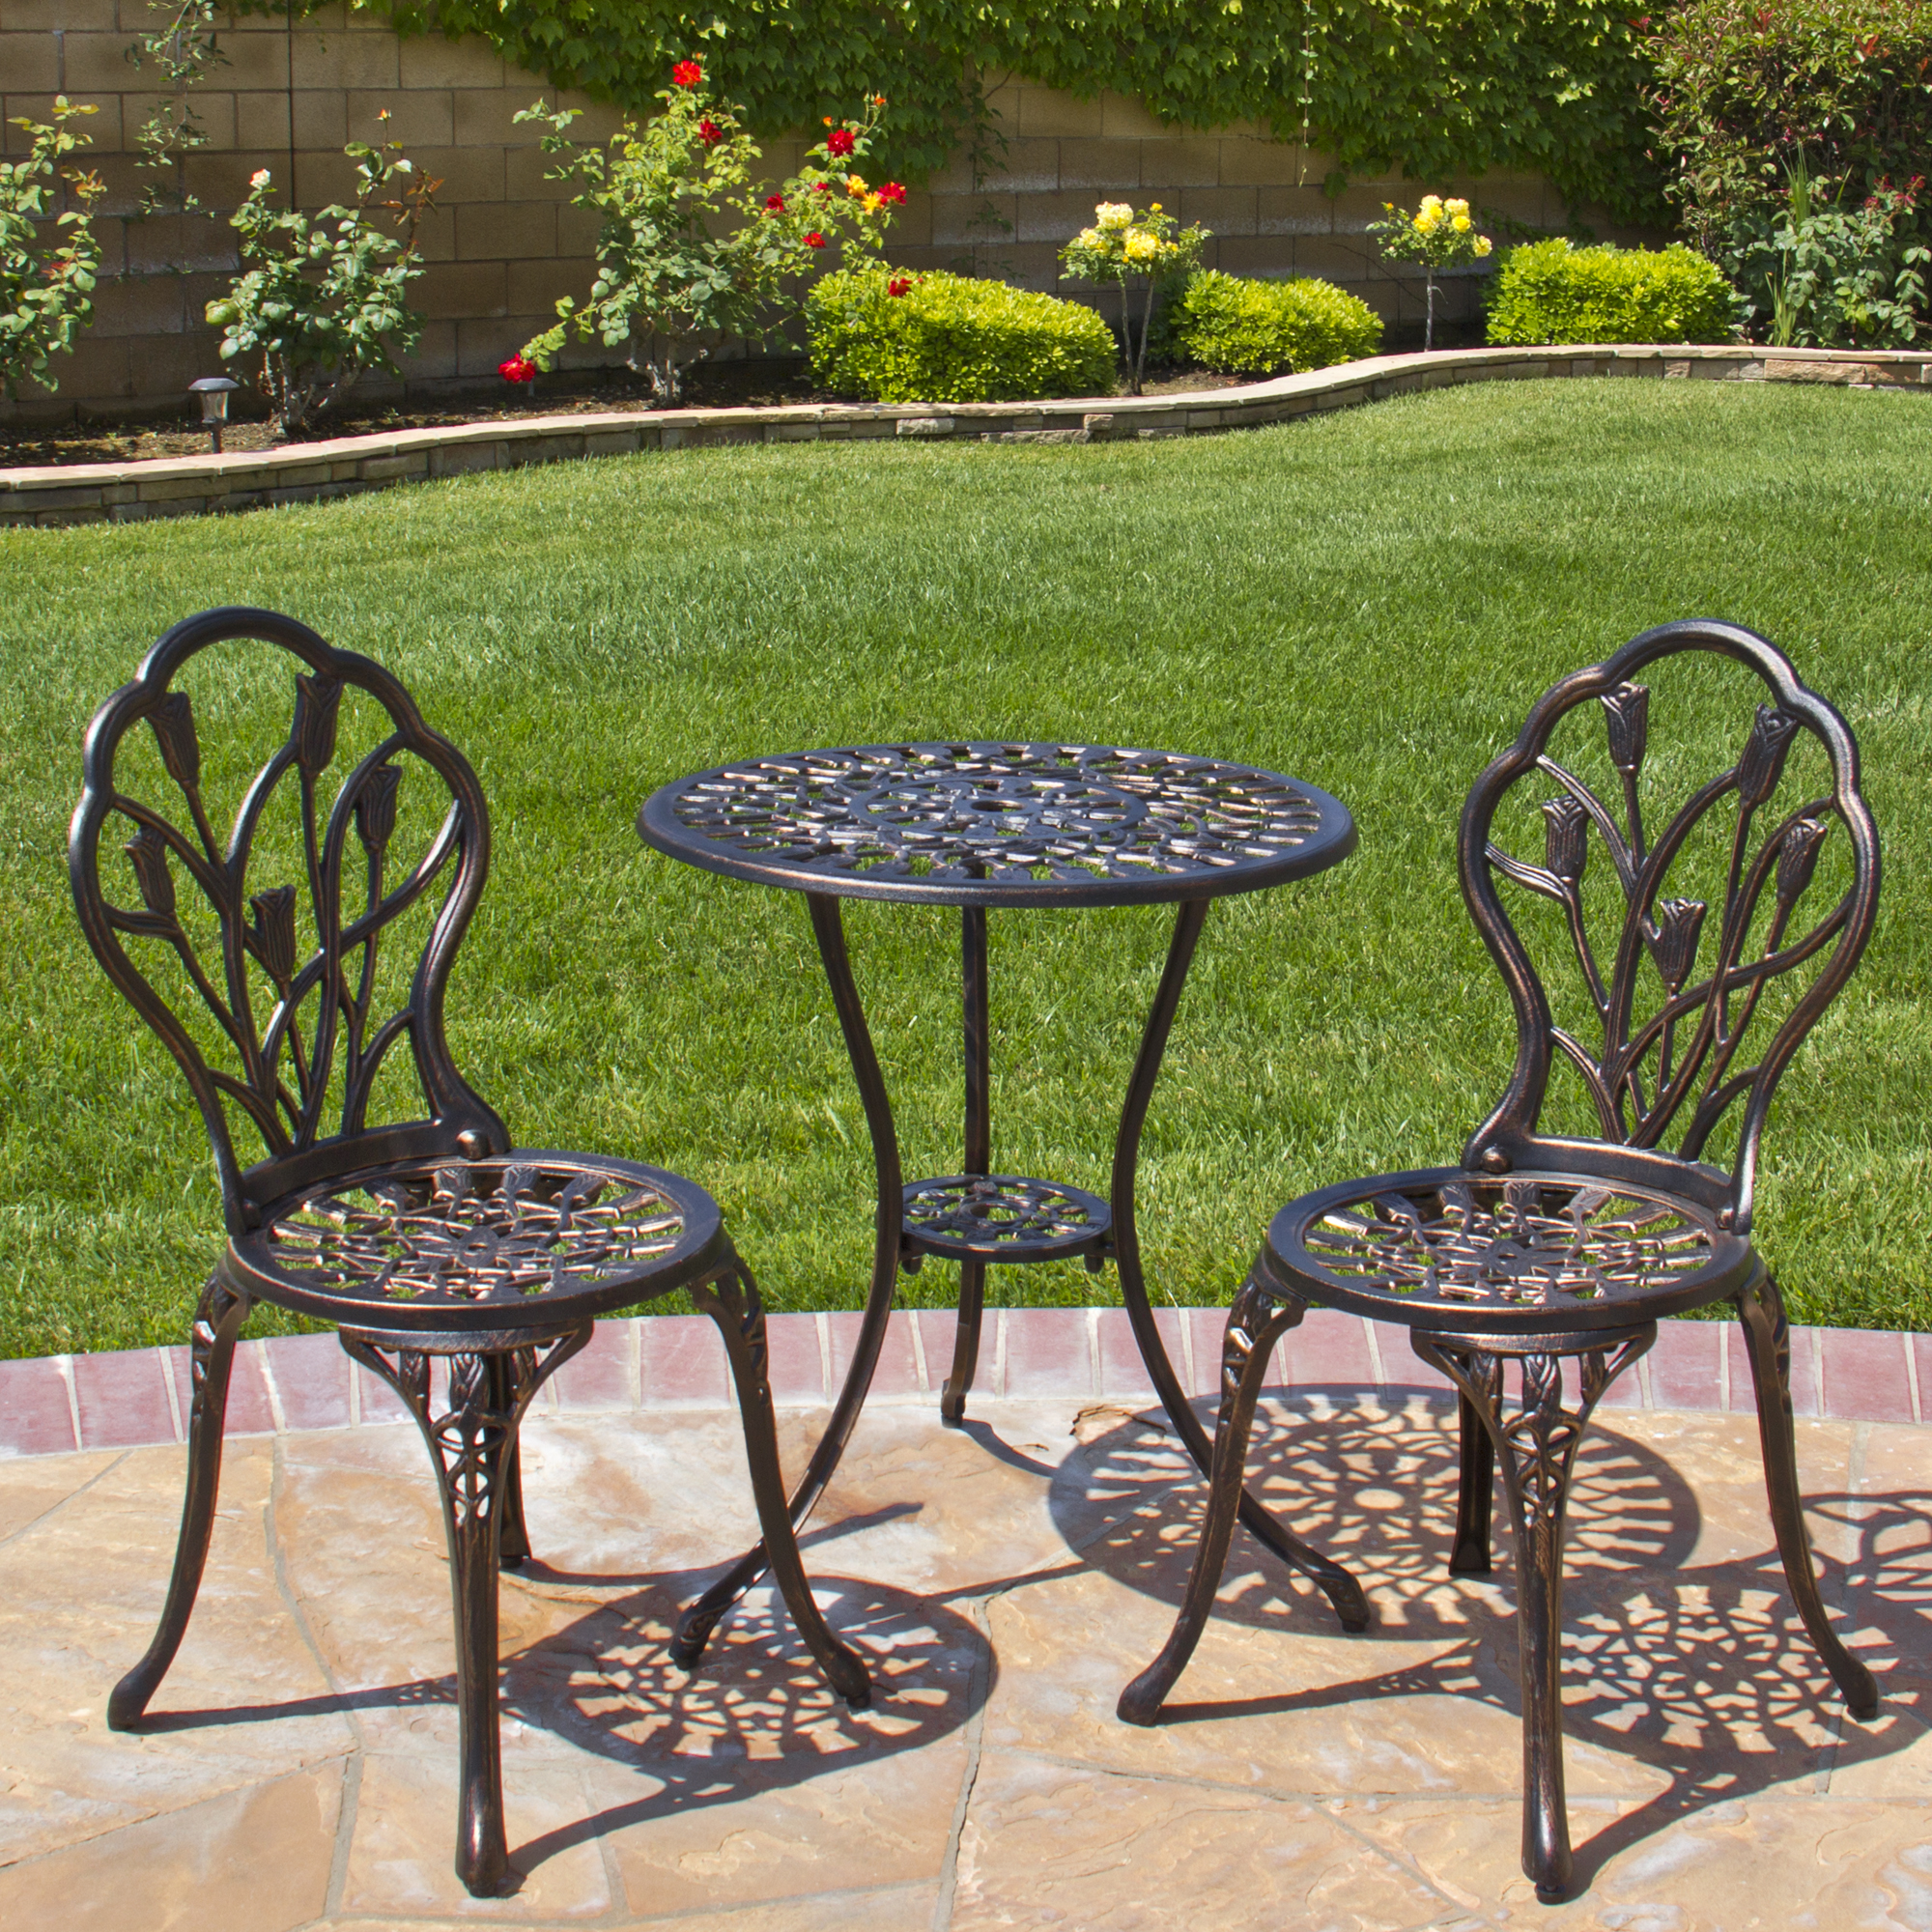 Metal Bistro Table And Chairs Details About Best Choice Products Cast Aluminum Patio Bistro Furniture Set In Antique Copper